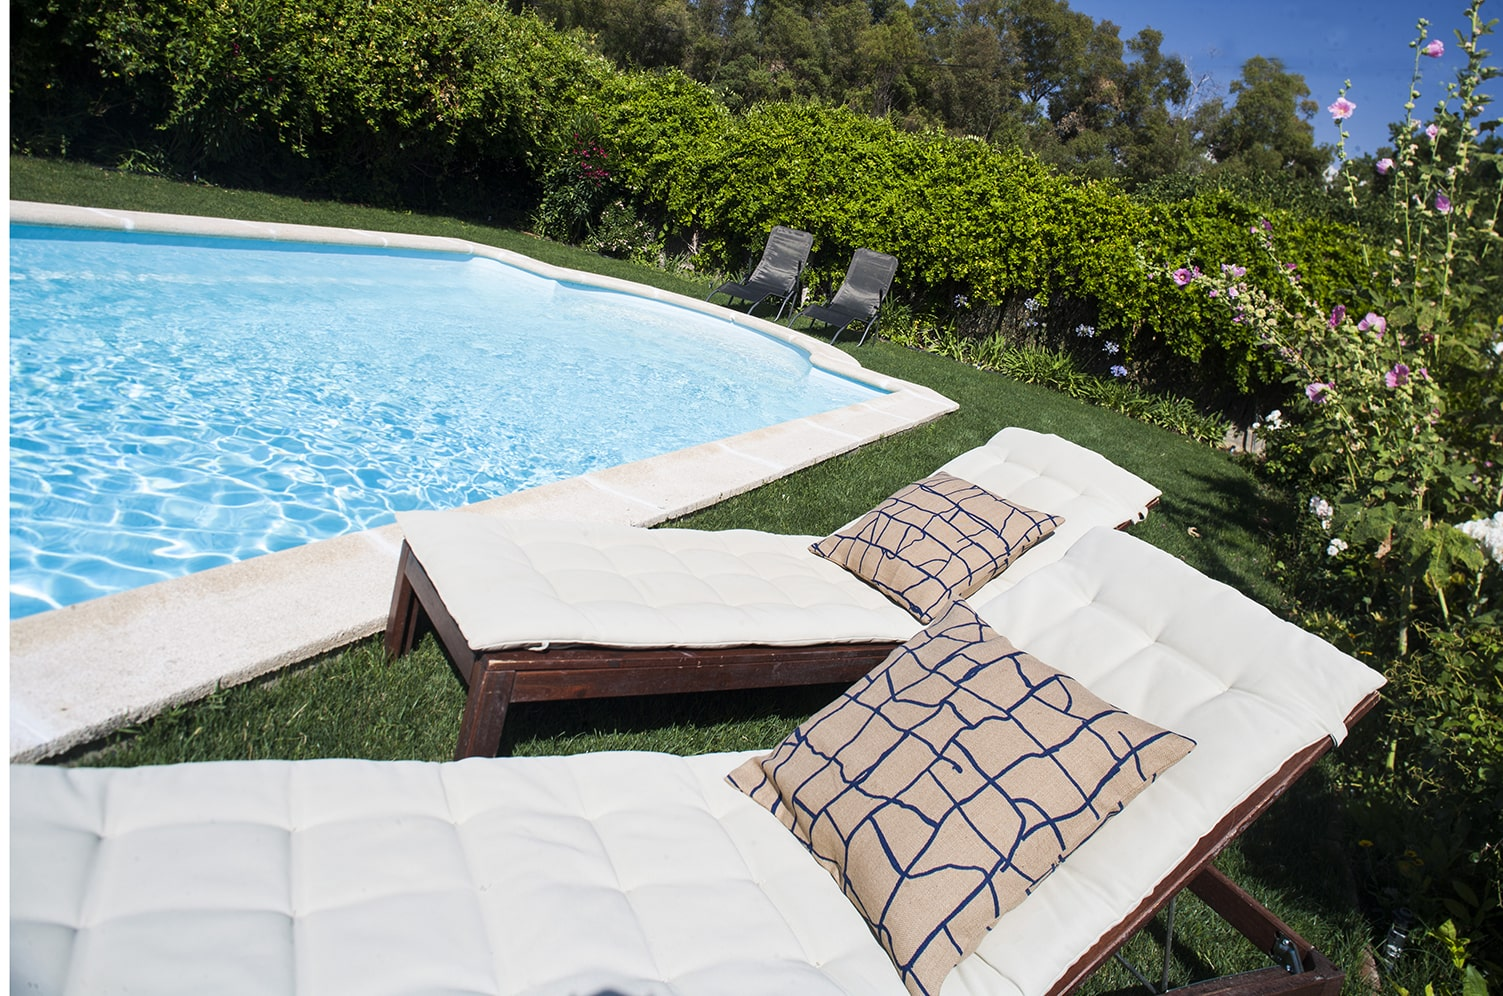 pool side with sunloungers